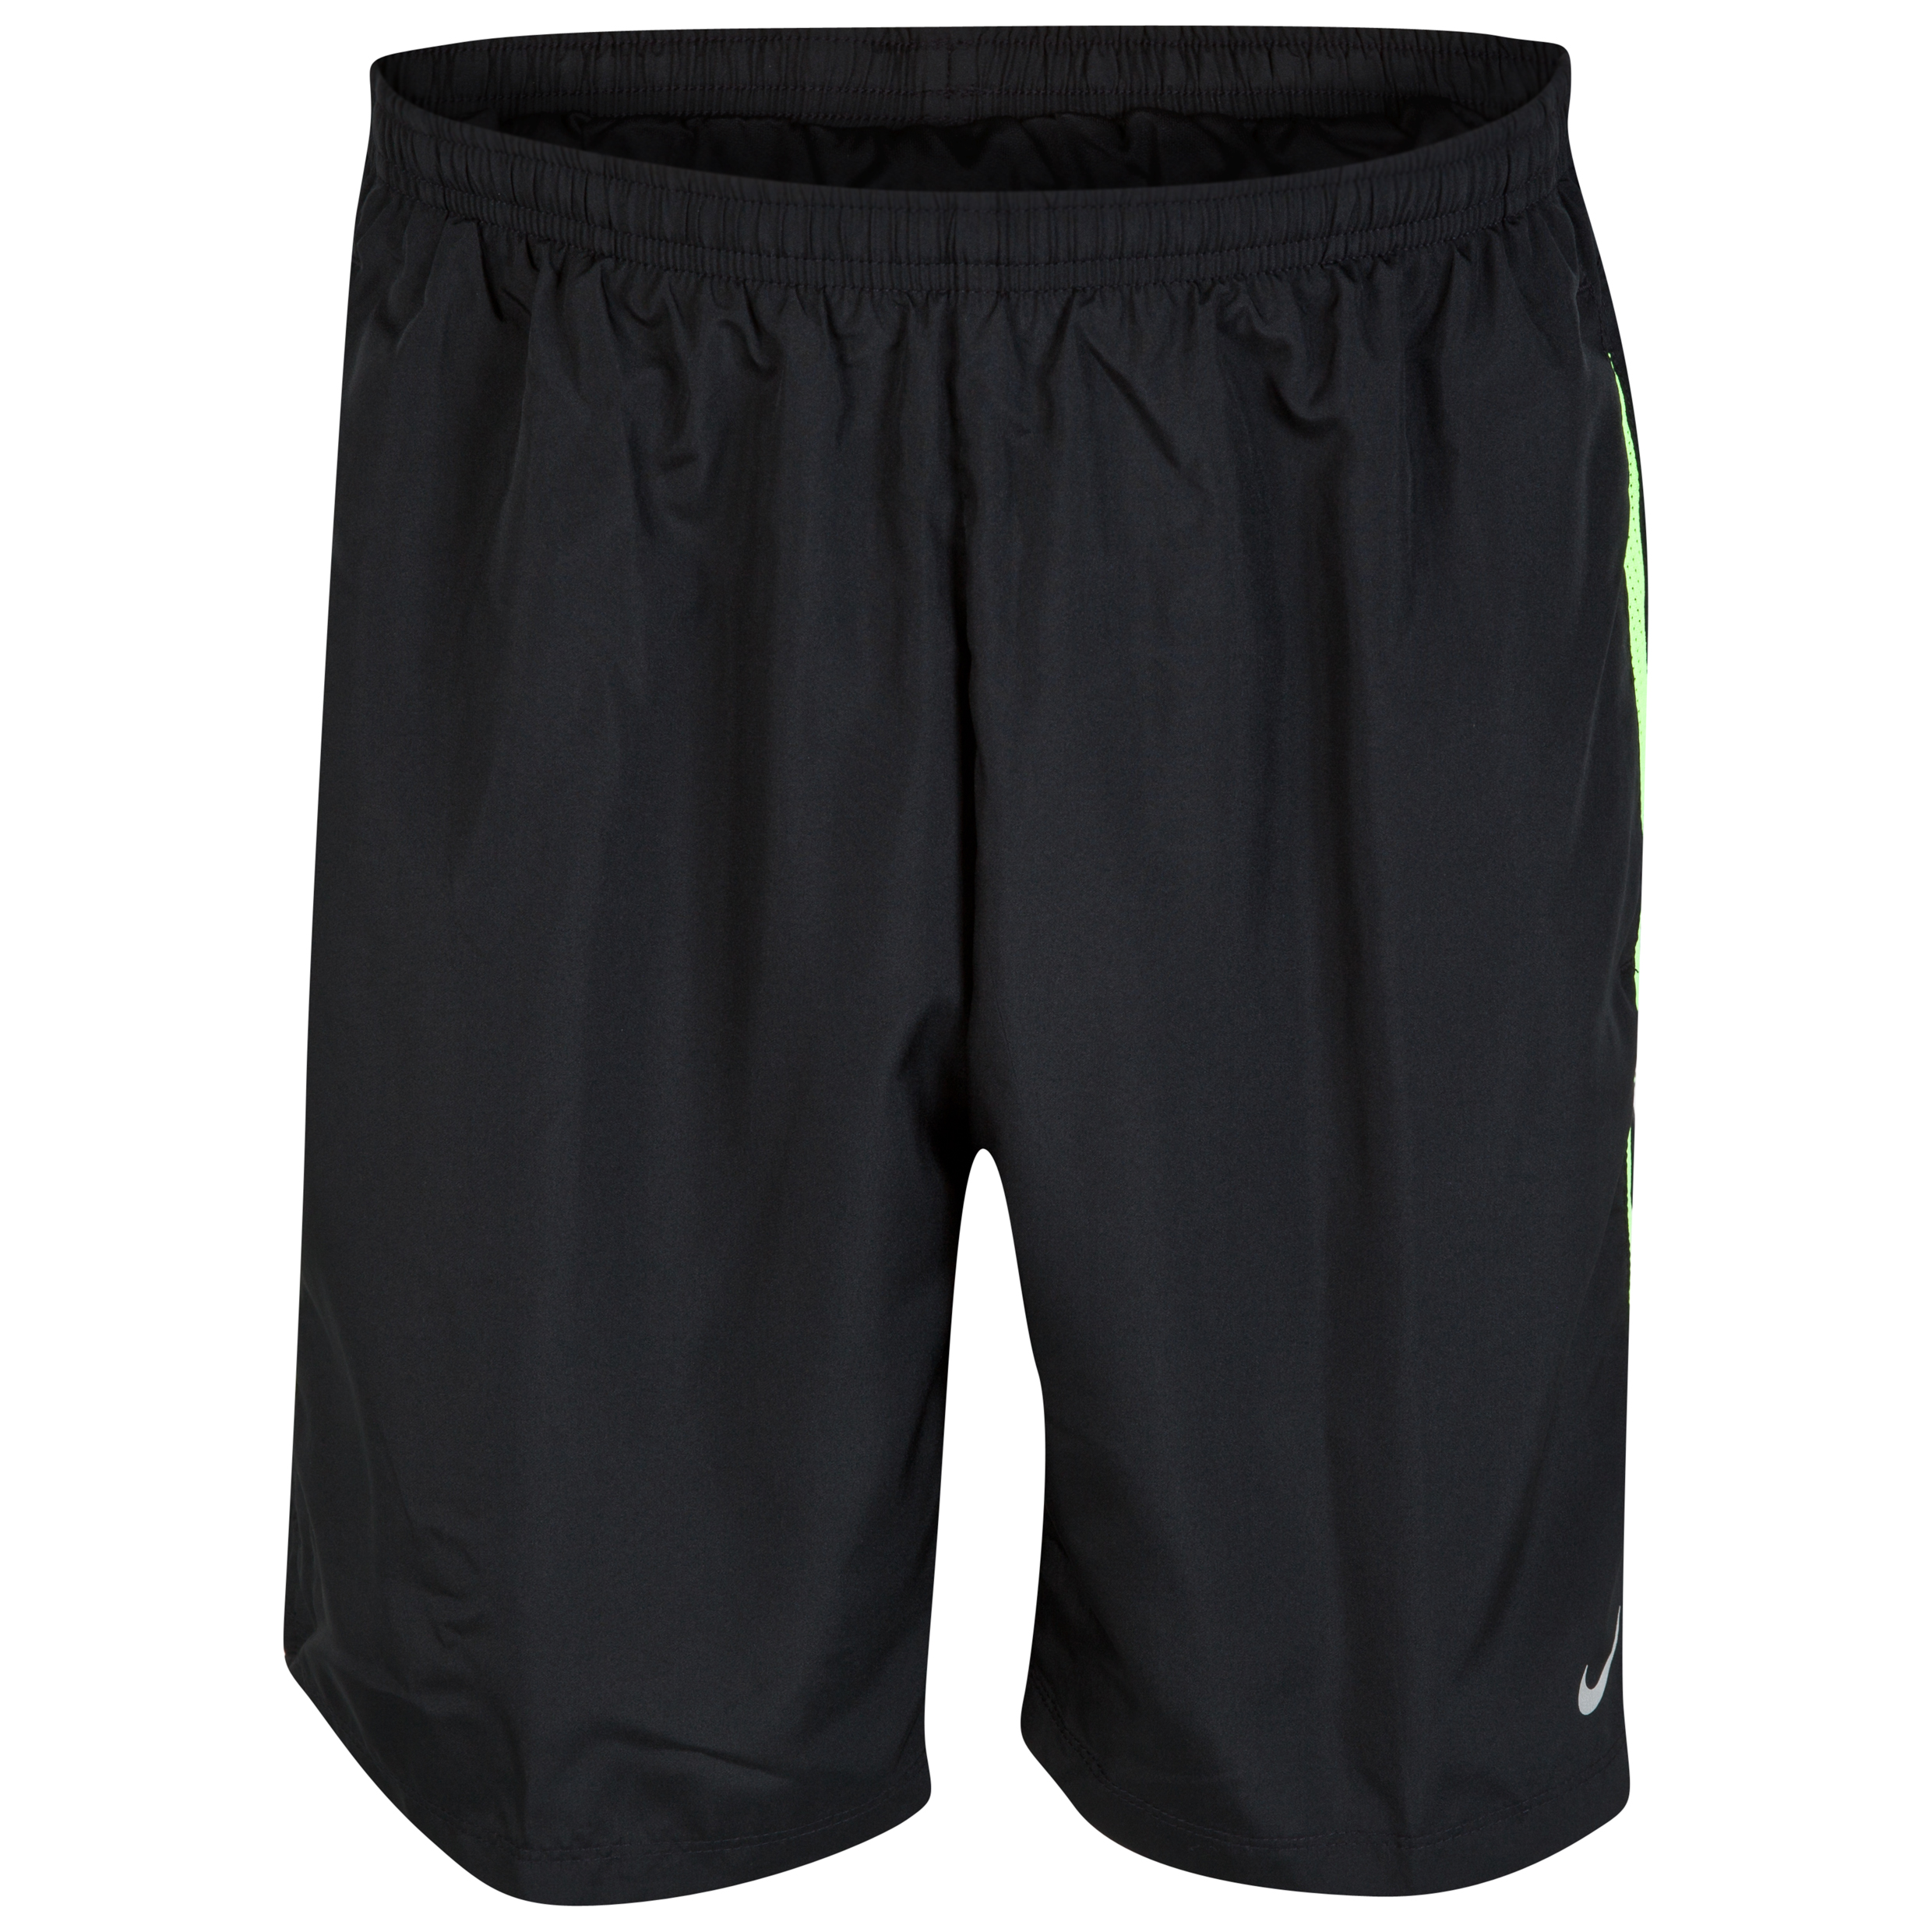 Nike Flash 7 Woven Short Black